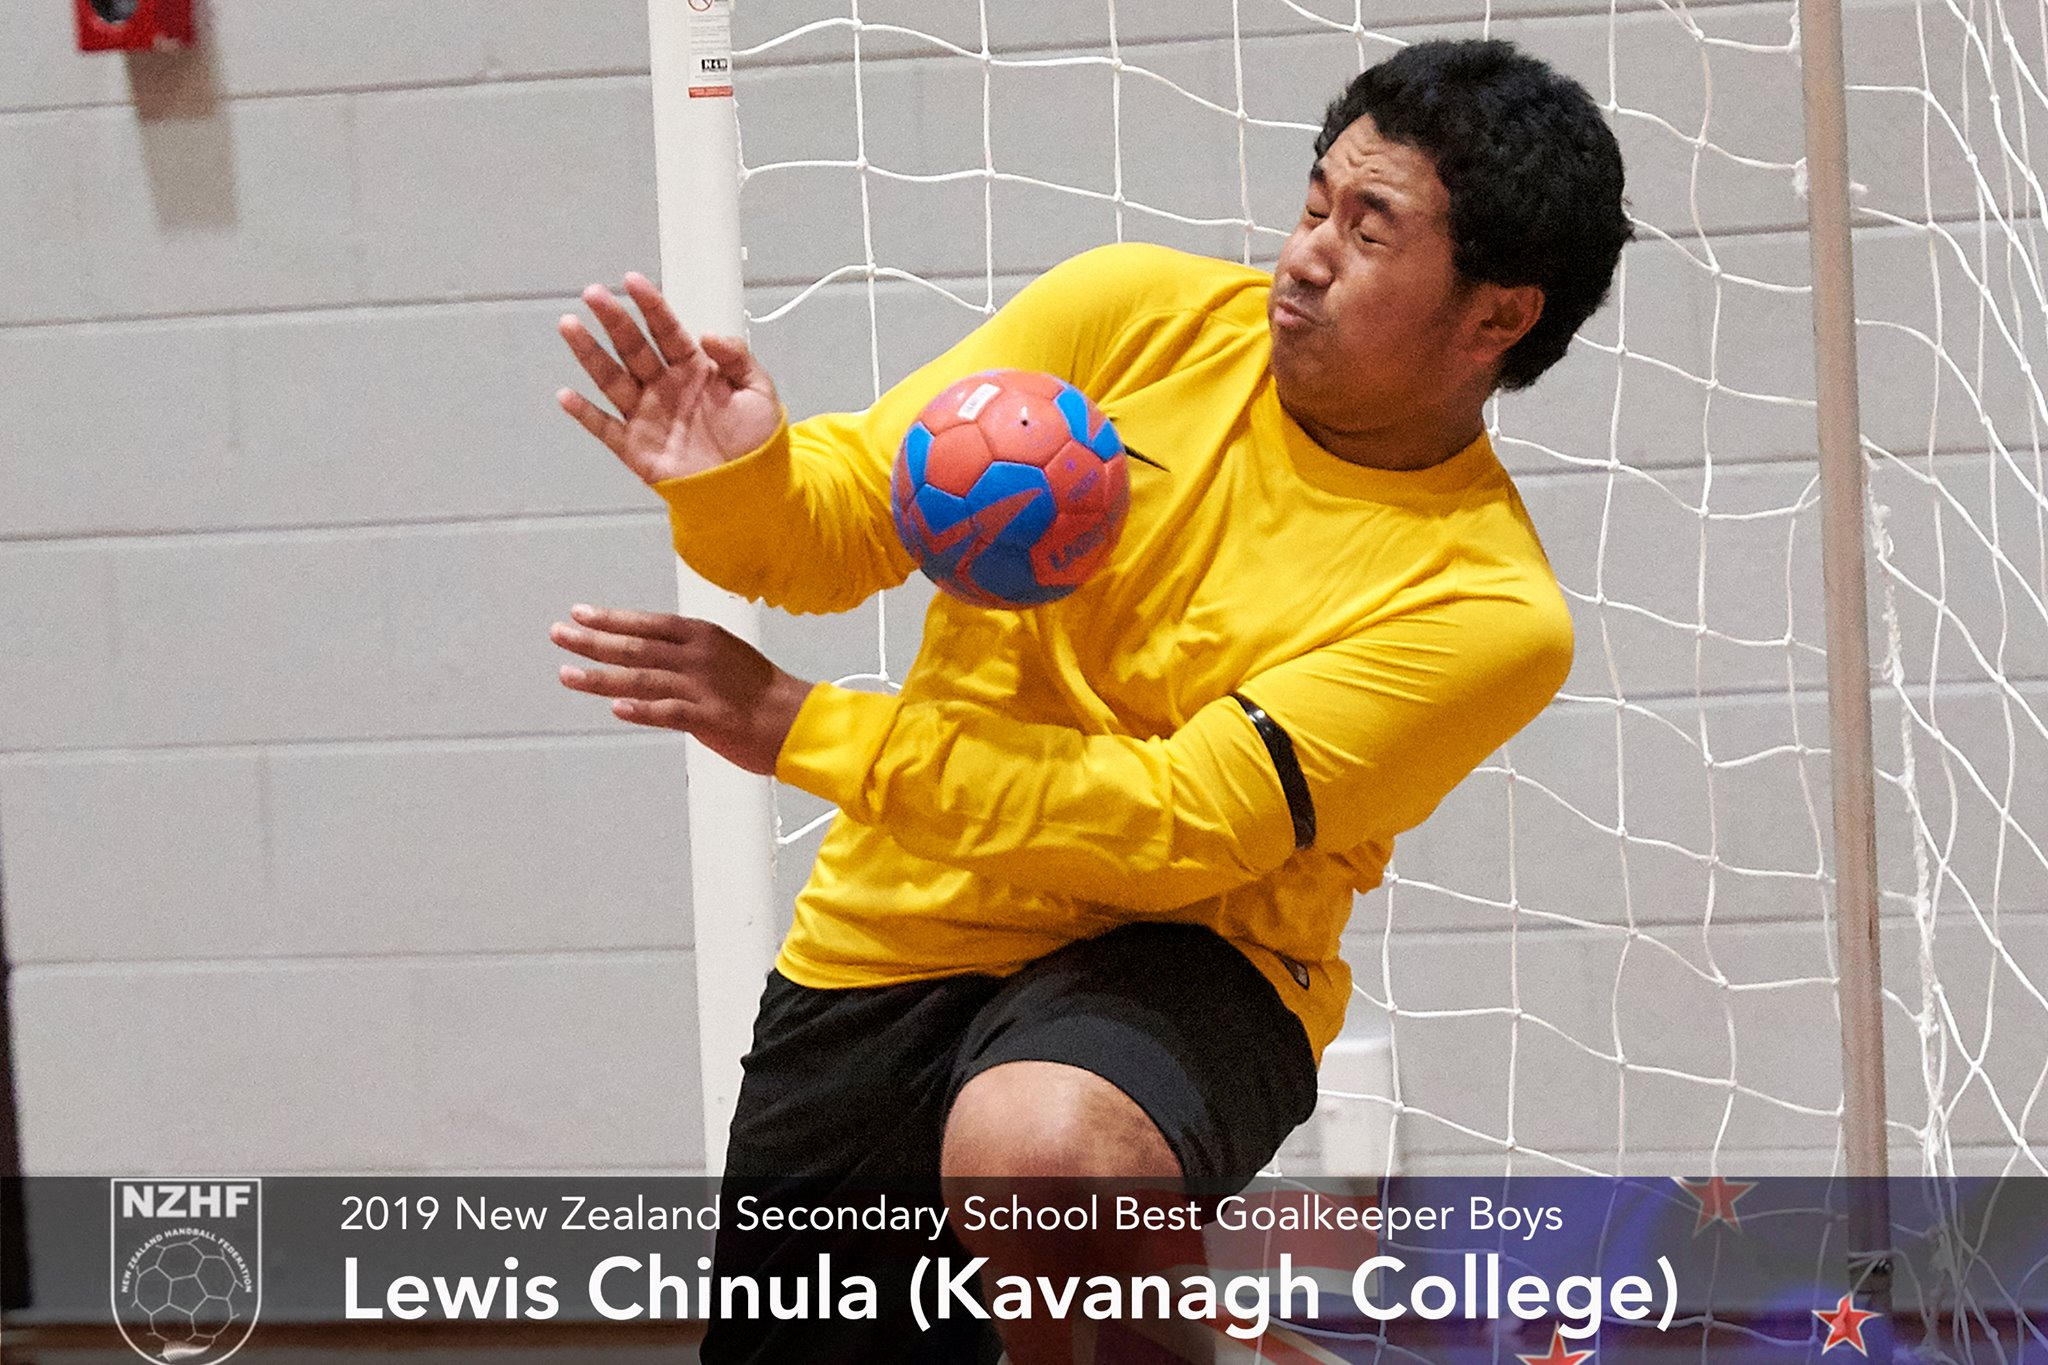 2019 Best goalkeeper boys Lewis Chinula Kavanagh College.jpg